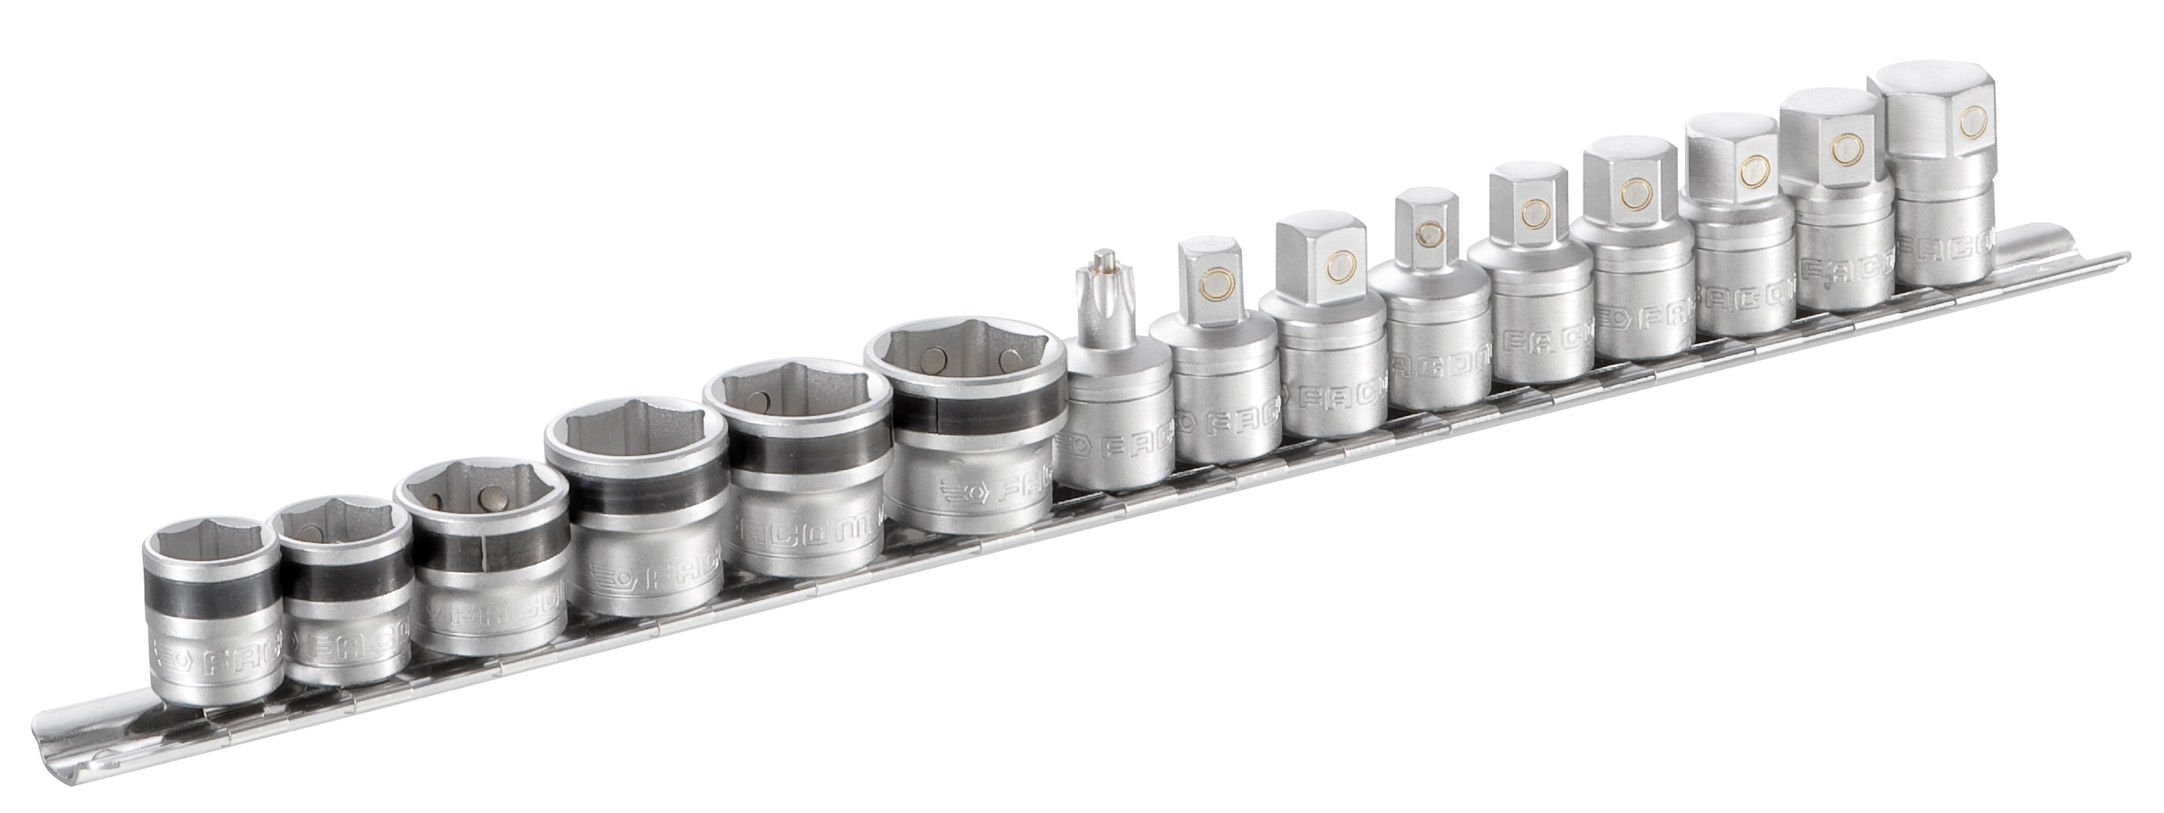 Facom mb-j15pg Nozzle Drain Socket and 6 Magnetic Storage Rack, Set of 9 by Facom (Image #1)